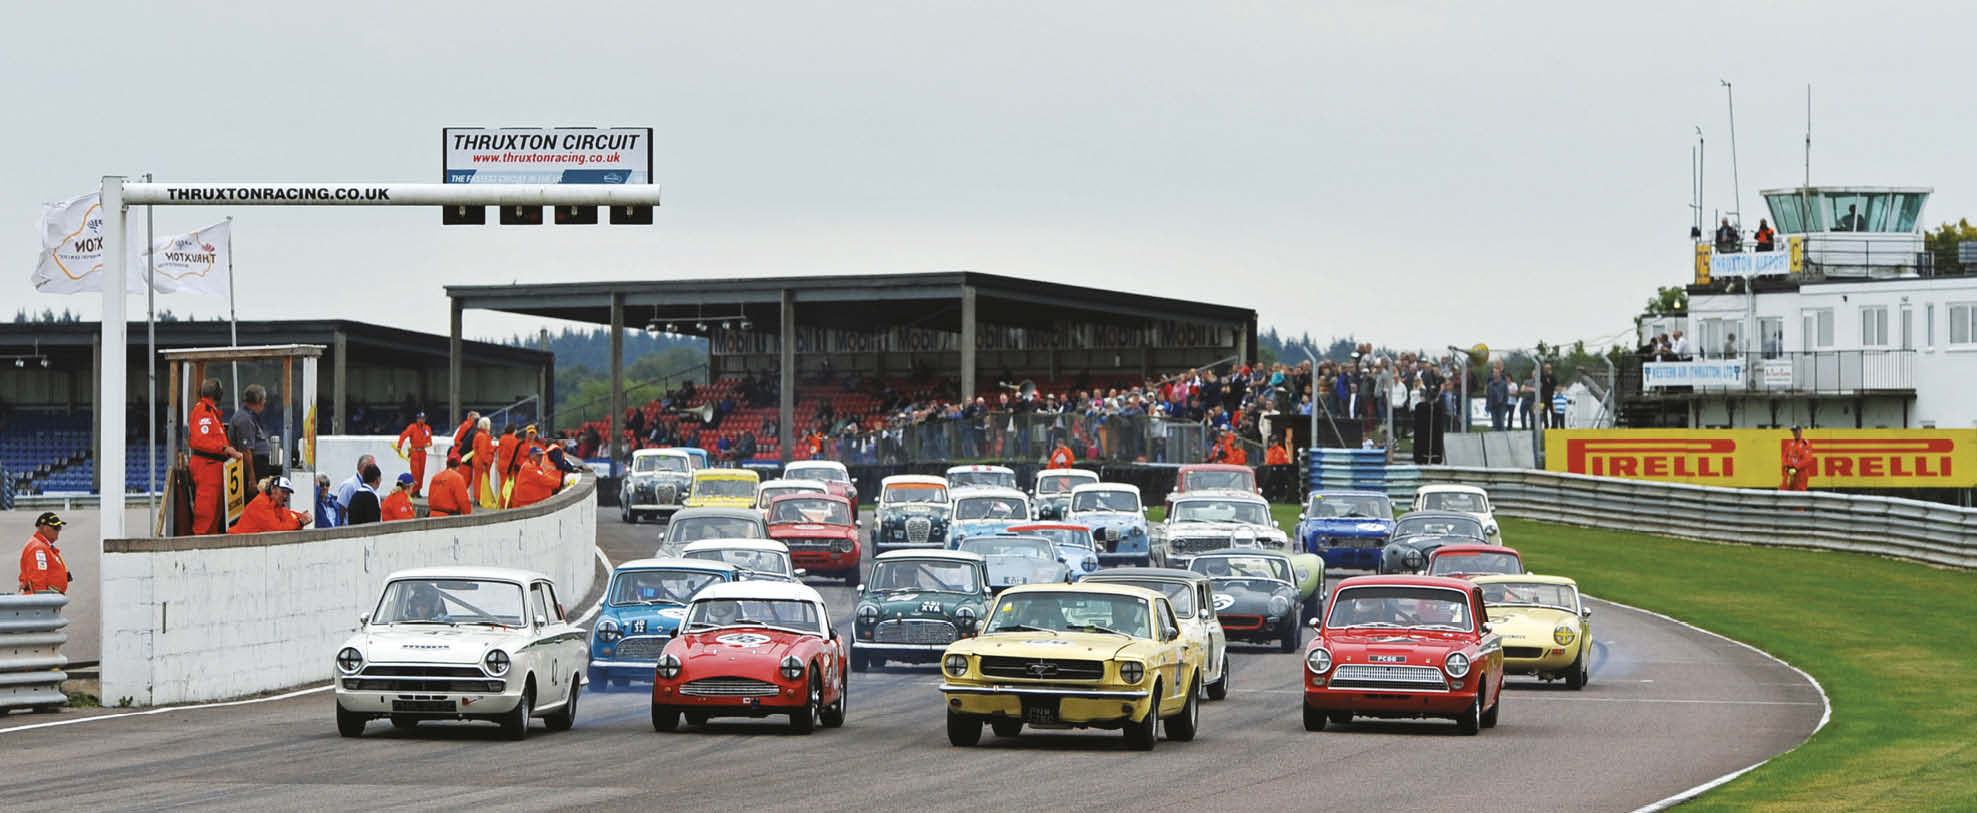 HRDC sports and saloon racers will take part in the Thruxton Celebration